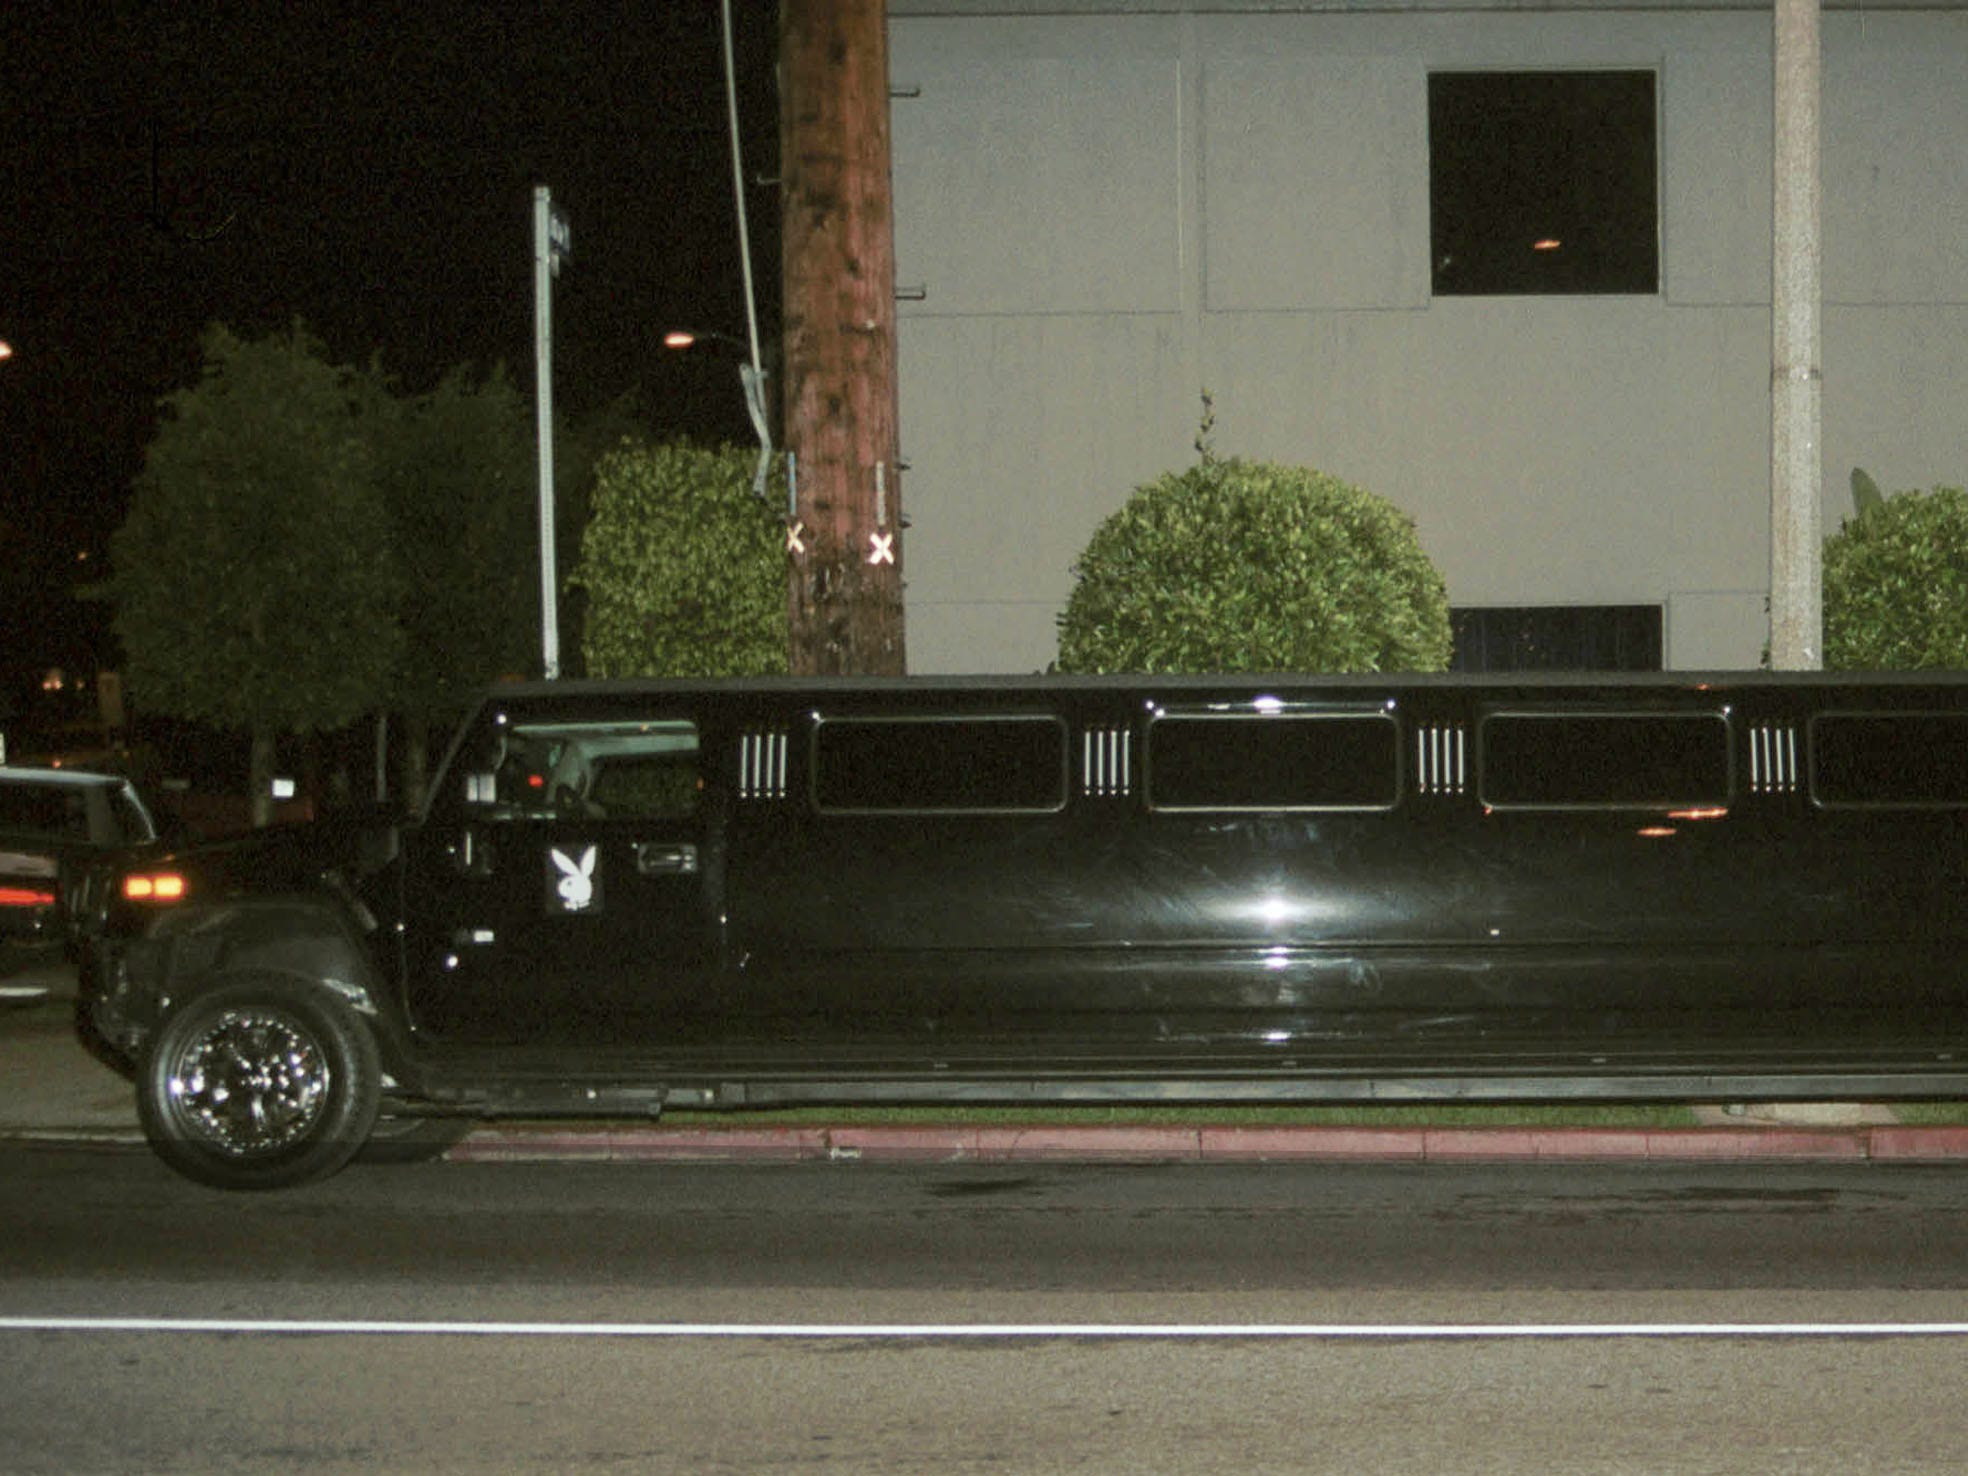 A 2004 Hummer H2 limo in Beverly Hills, Calif. Jan. 2, 2004